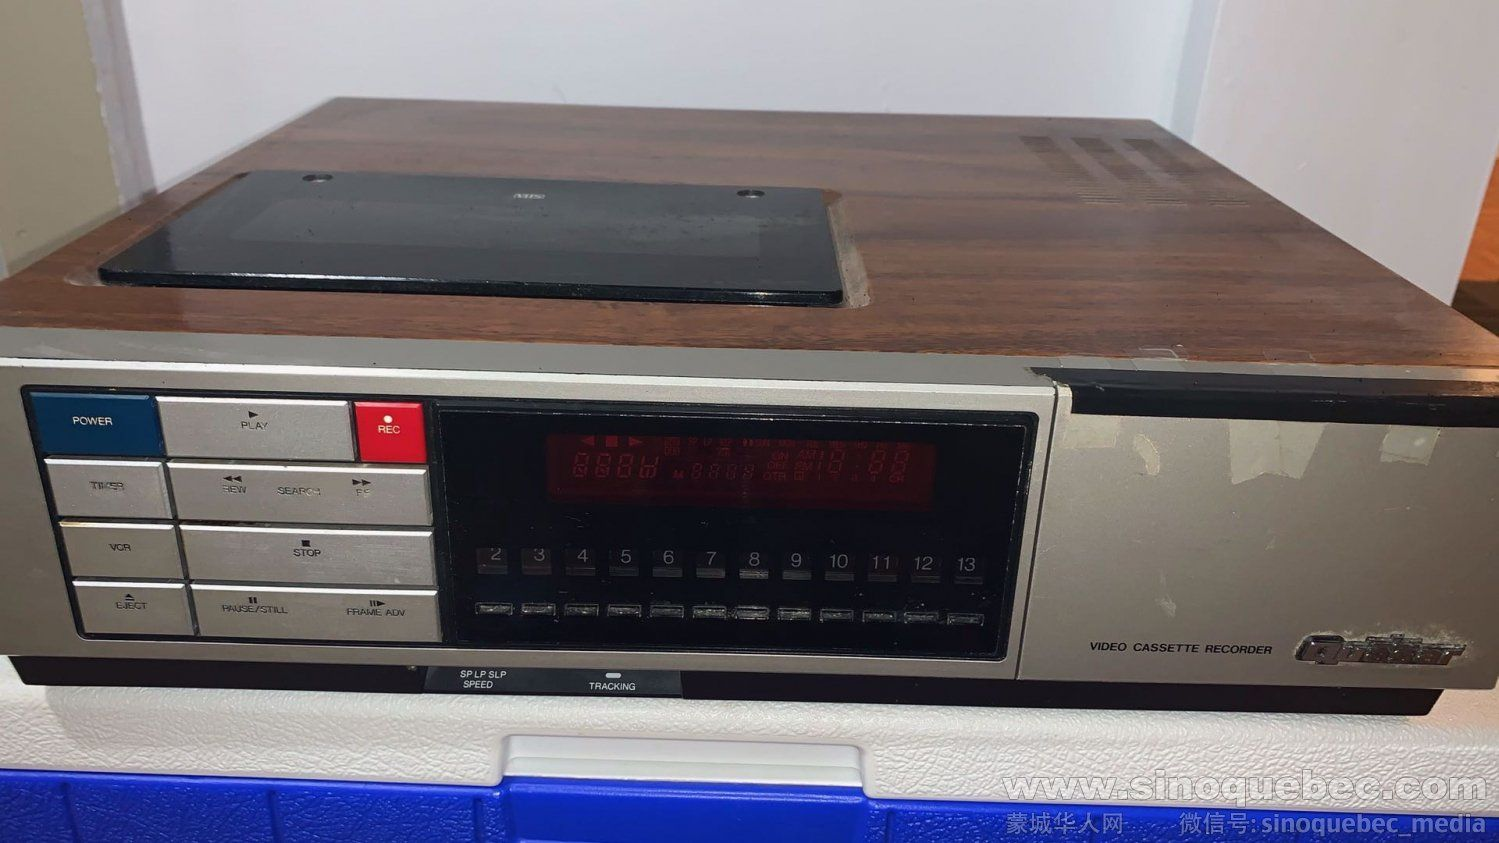 Video cassette recorder.jpg